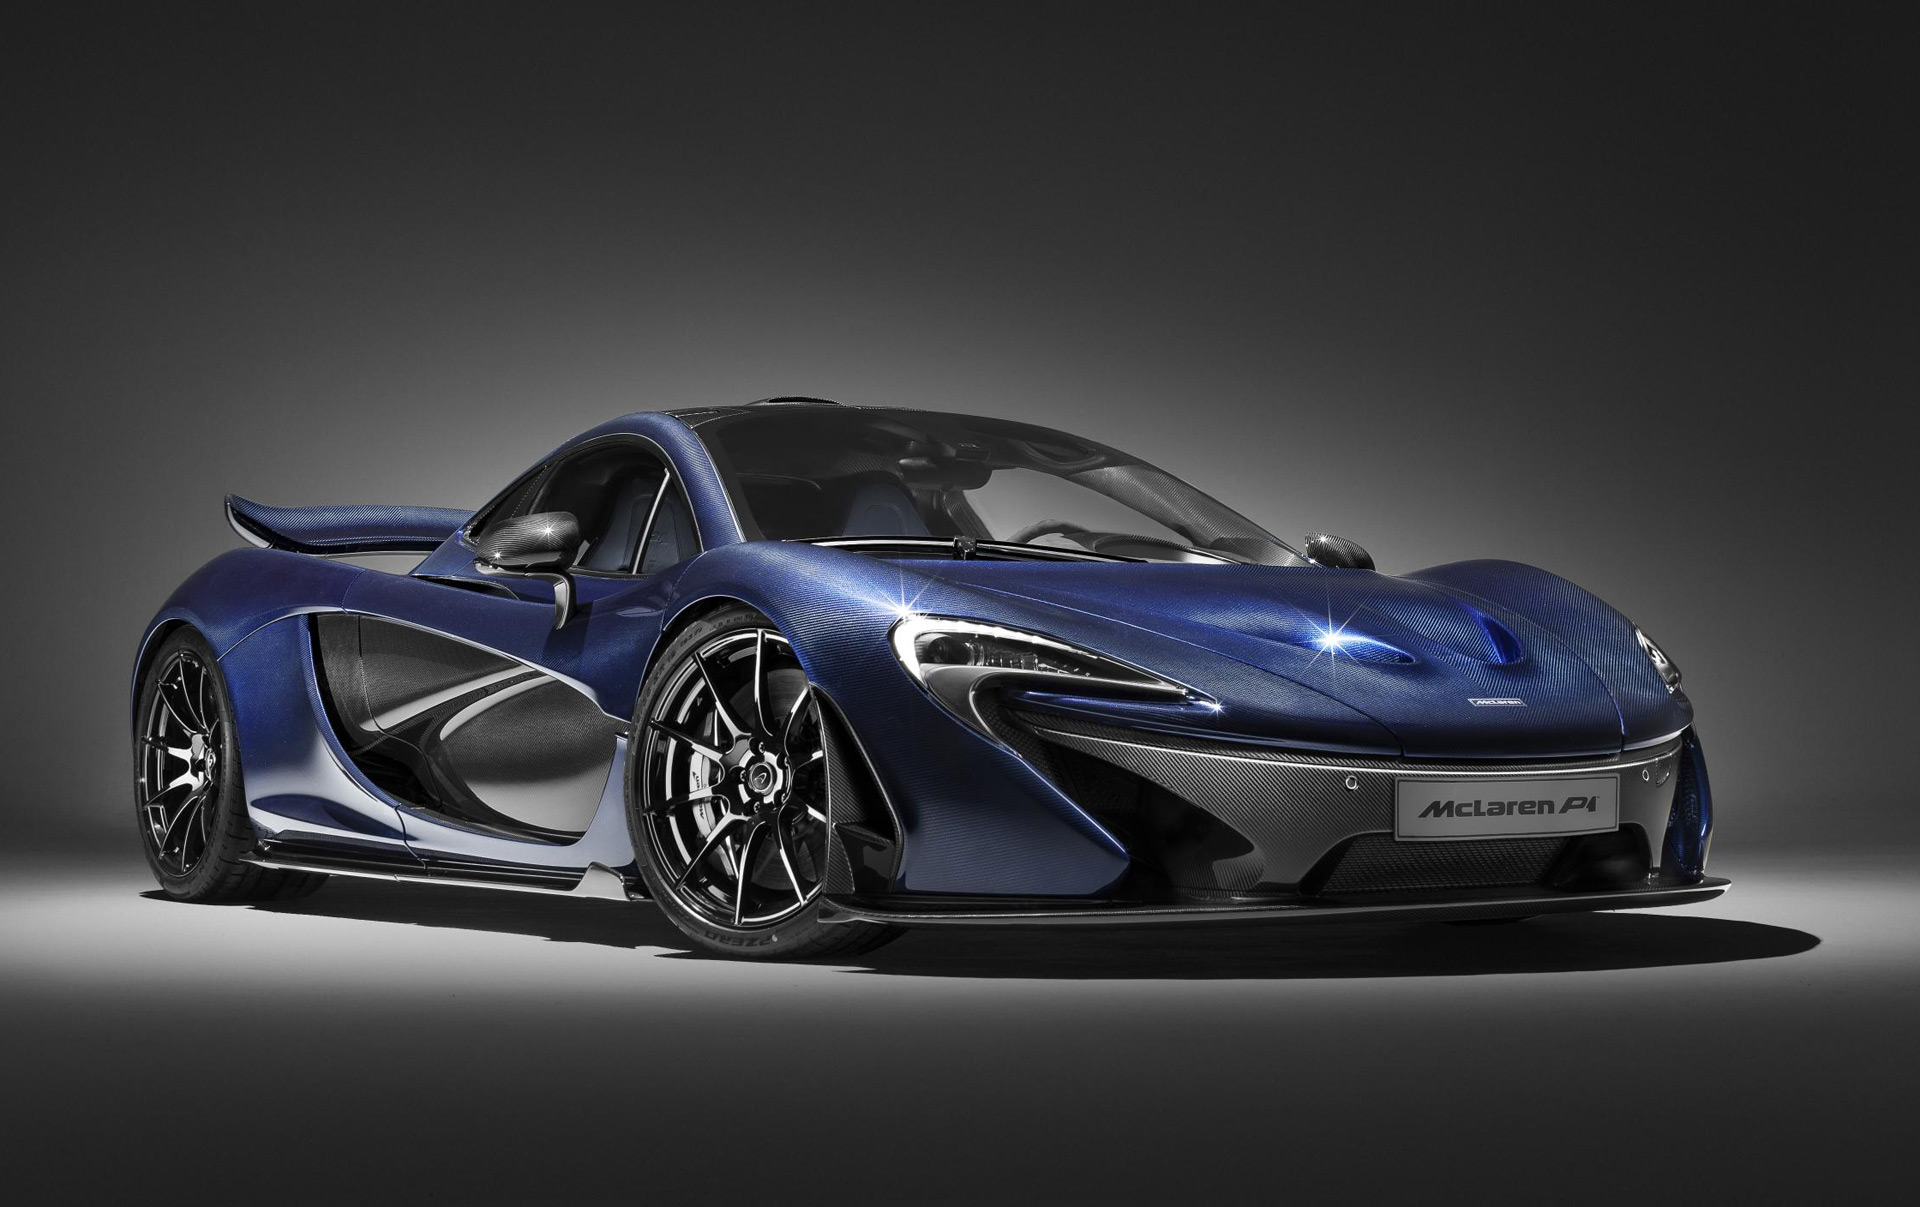 Fastest Car In The World Wallpaper Hd Mclaren Reveals Carbon Fiber Bodied P1 Confirms New